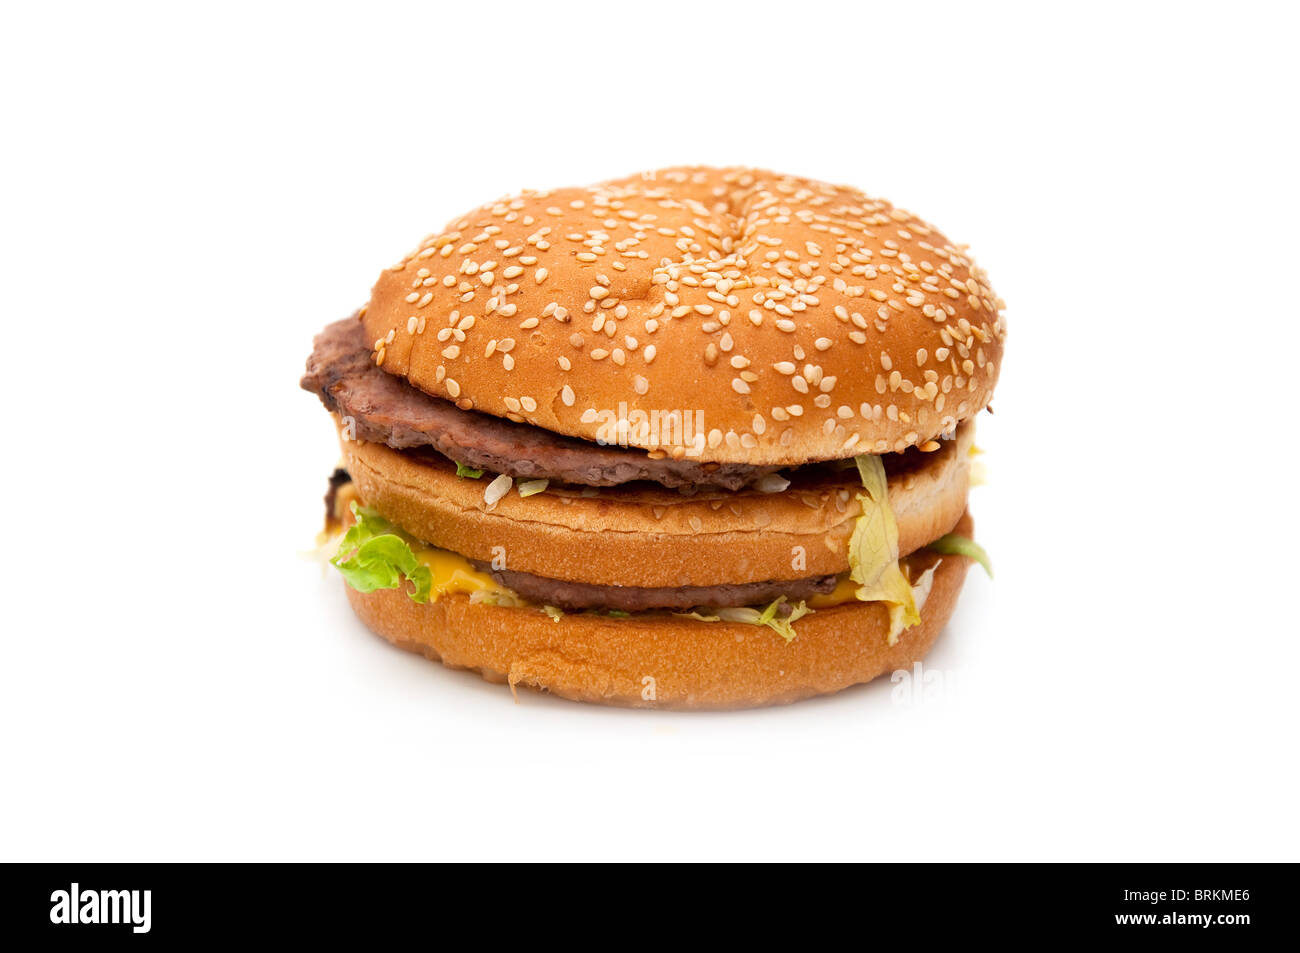 a tasty hamburger over white background. unhealthy junk food. Stock Photo